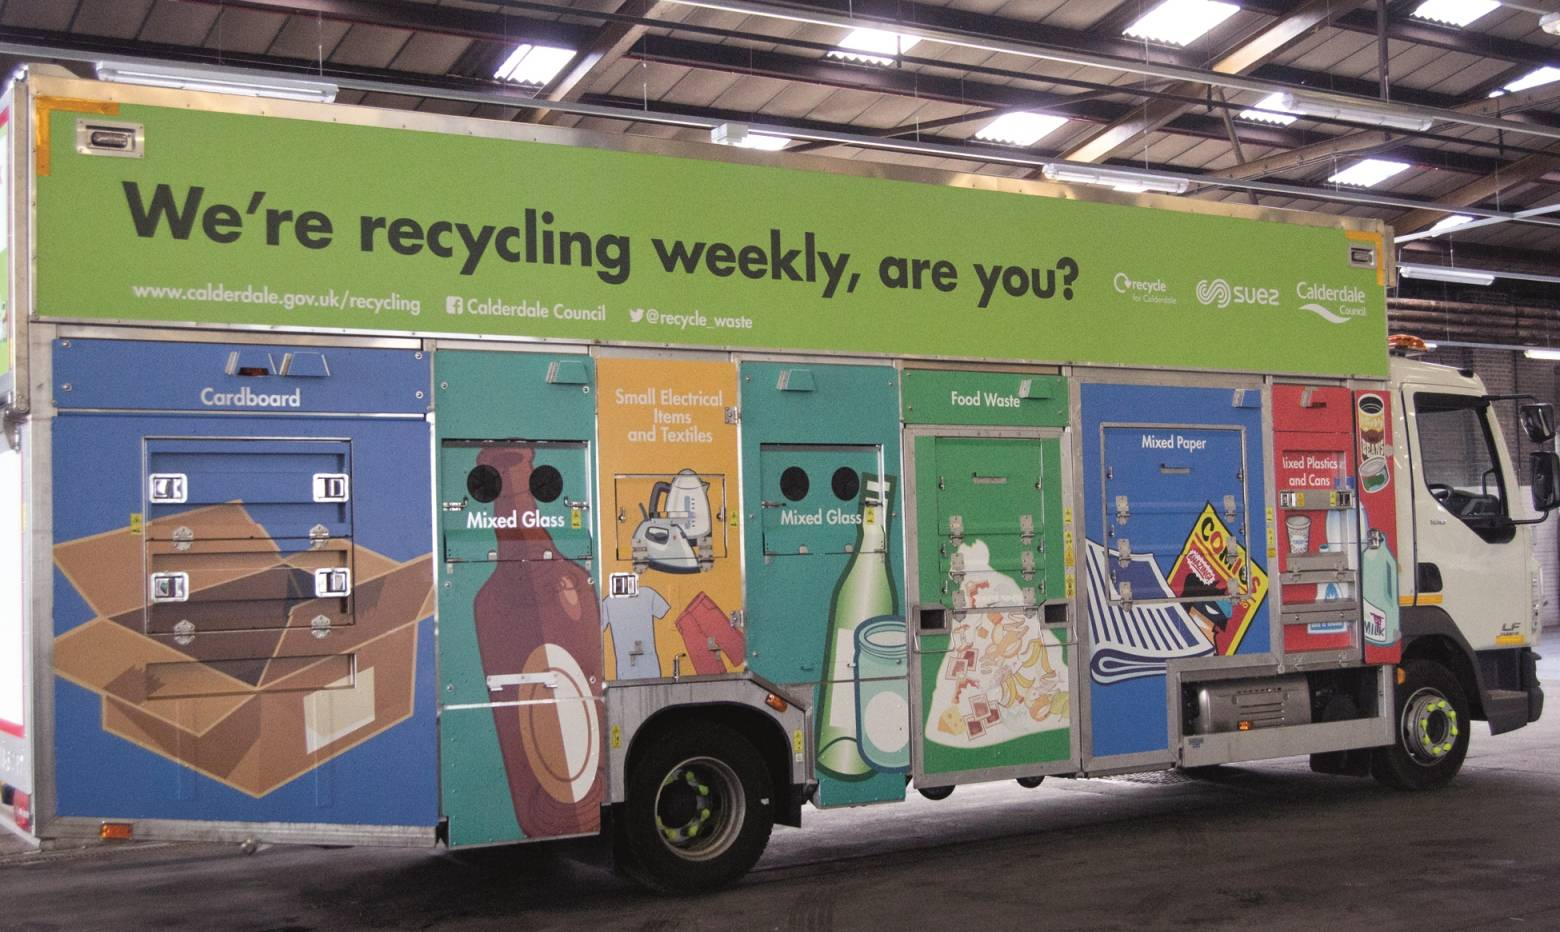 New recycling vehicle